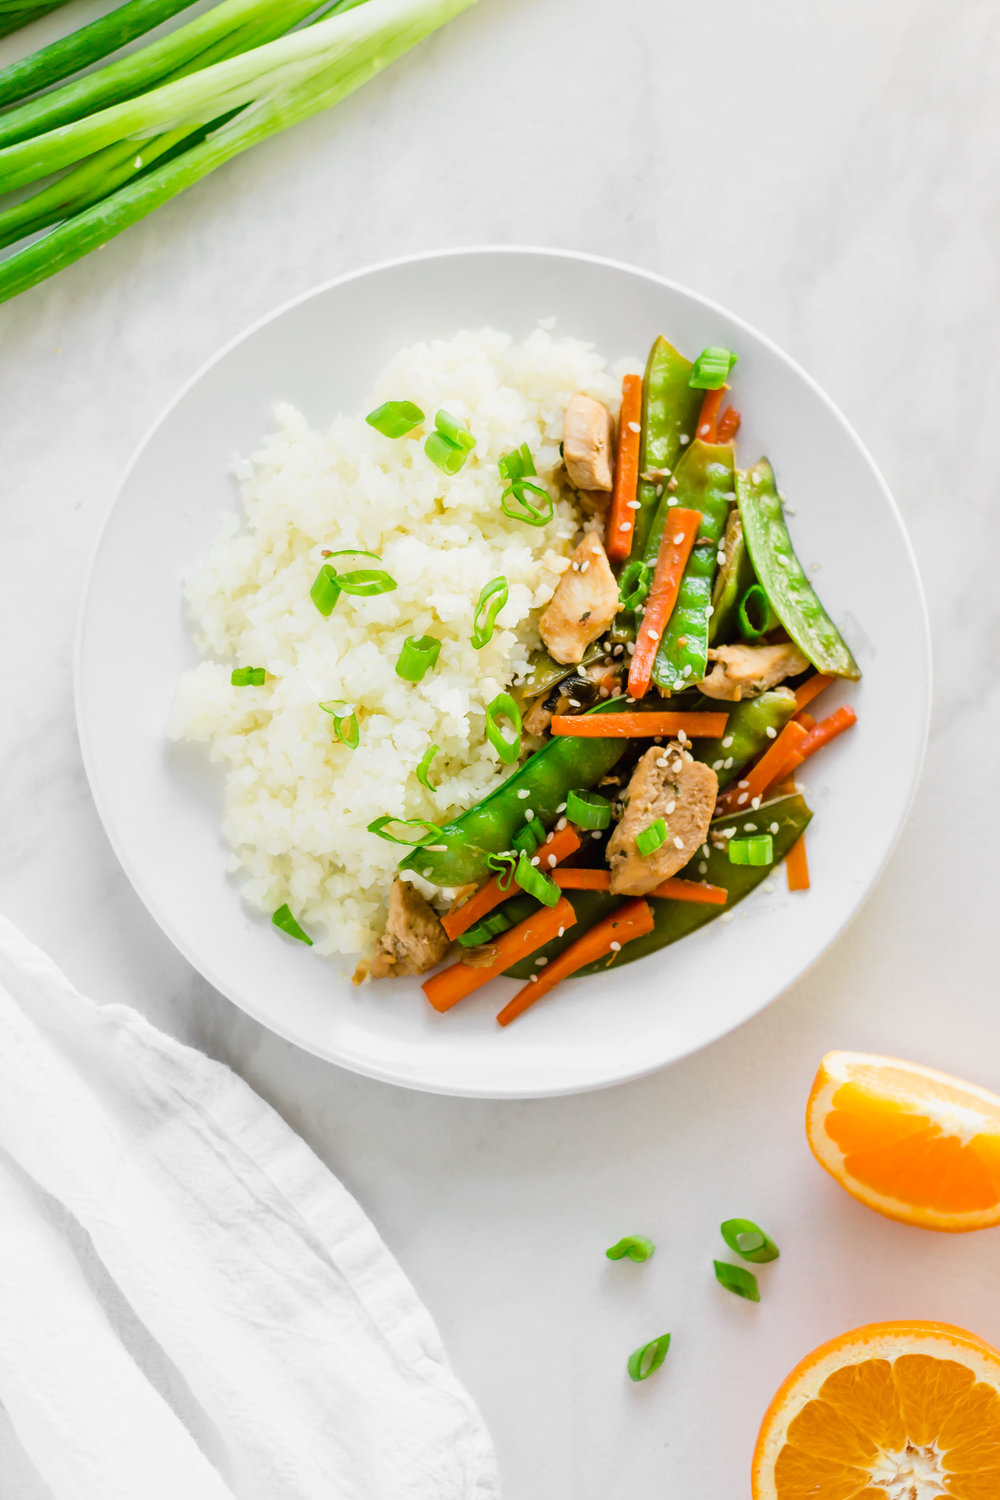 This Chicken Teriyaki Stir Fry is extra delicious thanks to an easy teriyaki sauce that completely makes the dish. The best part? The teriyaki sauce only requires five ingredients! #healthy #midweekminimalist